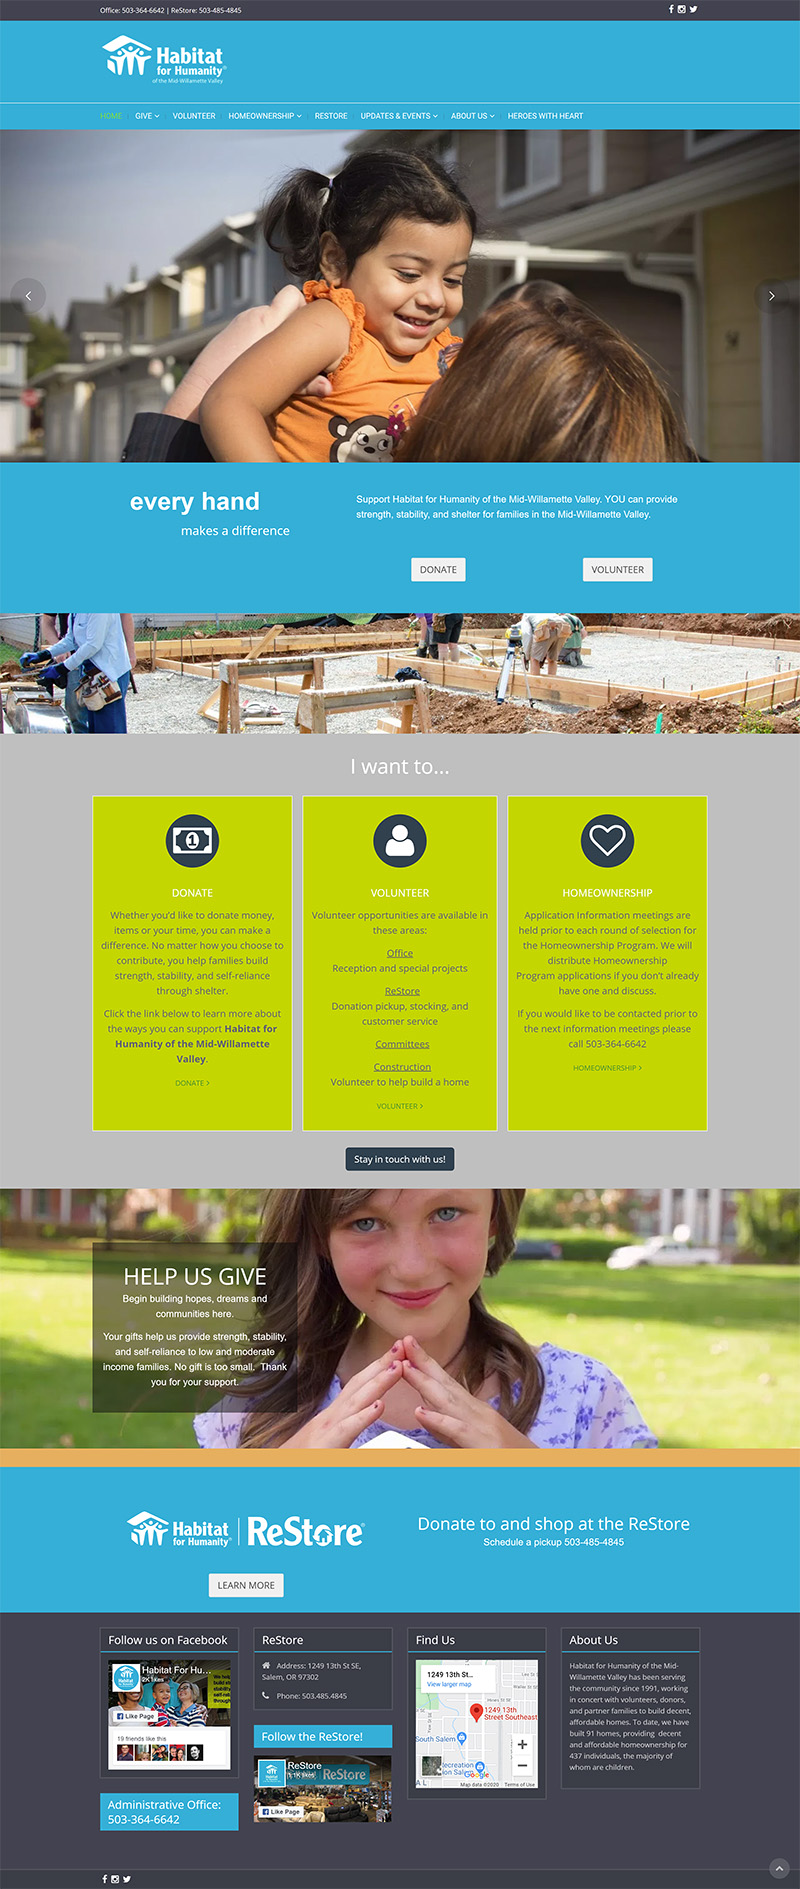 Habitat for Humanity of the Mid-Willamette Valley Home page before redesign